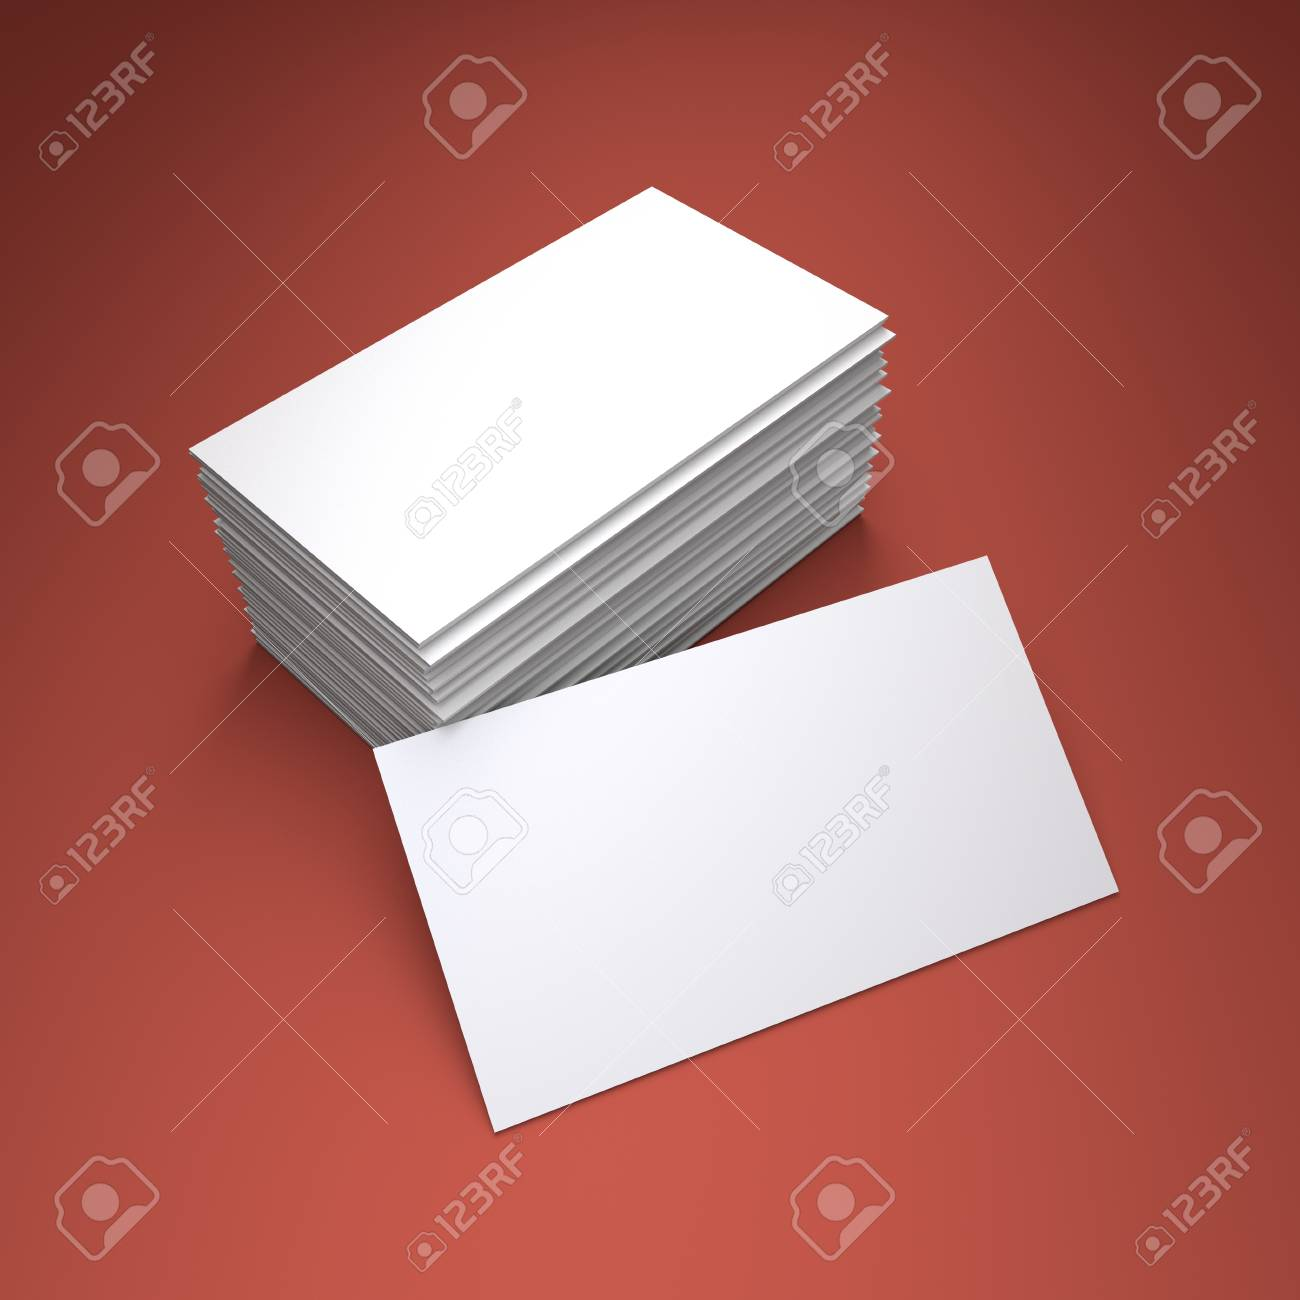 3D Rendering Of The Blank Business Card Stock Photo, Picture And ...